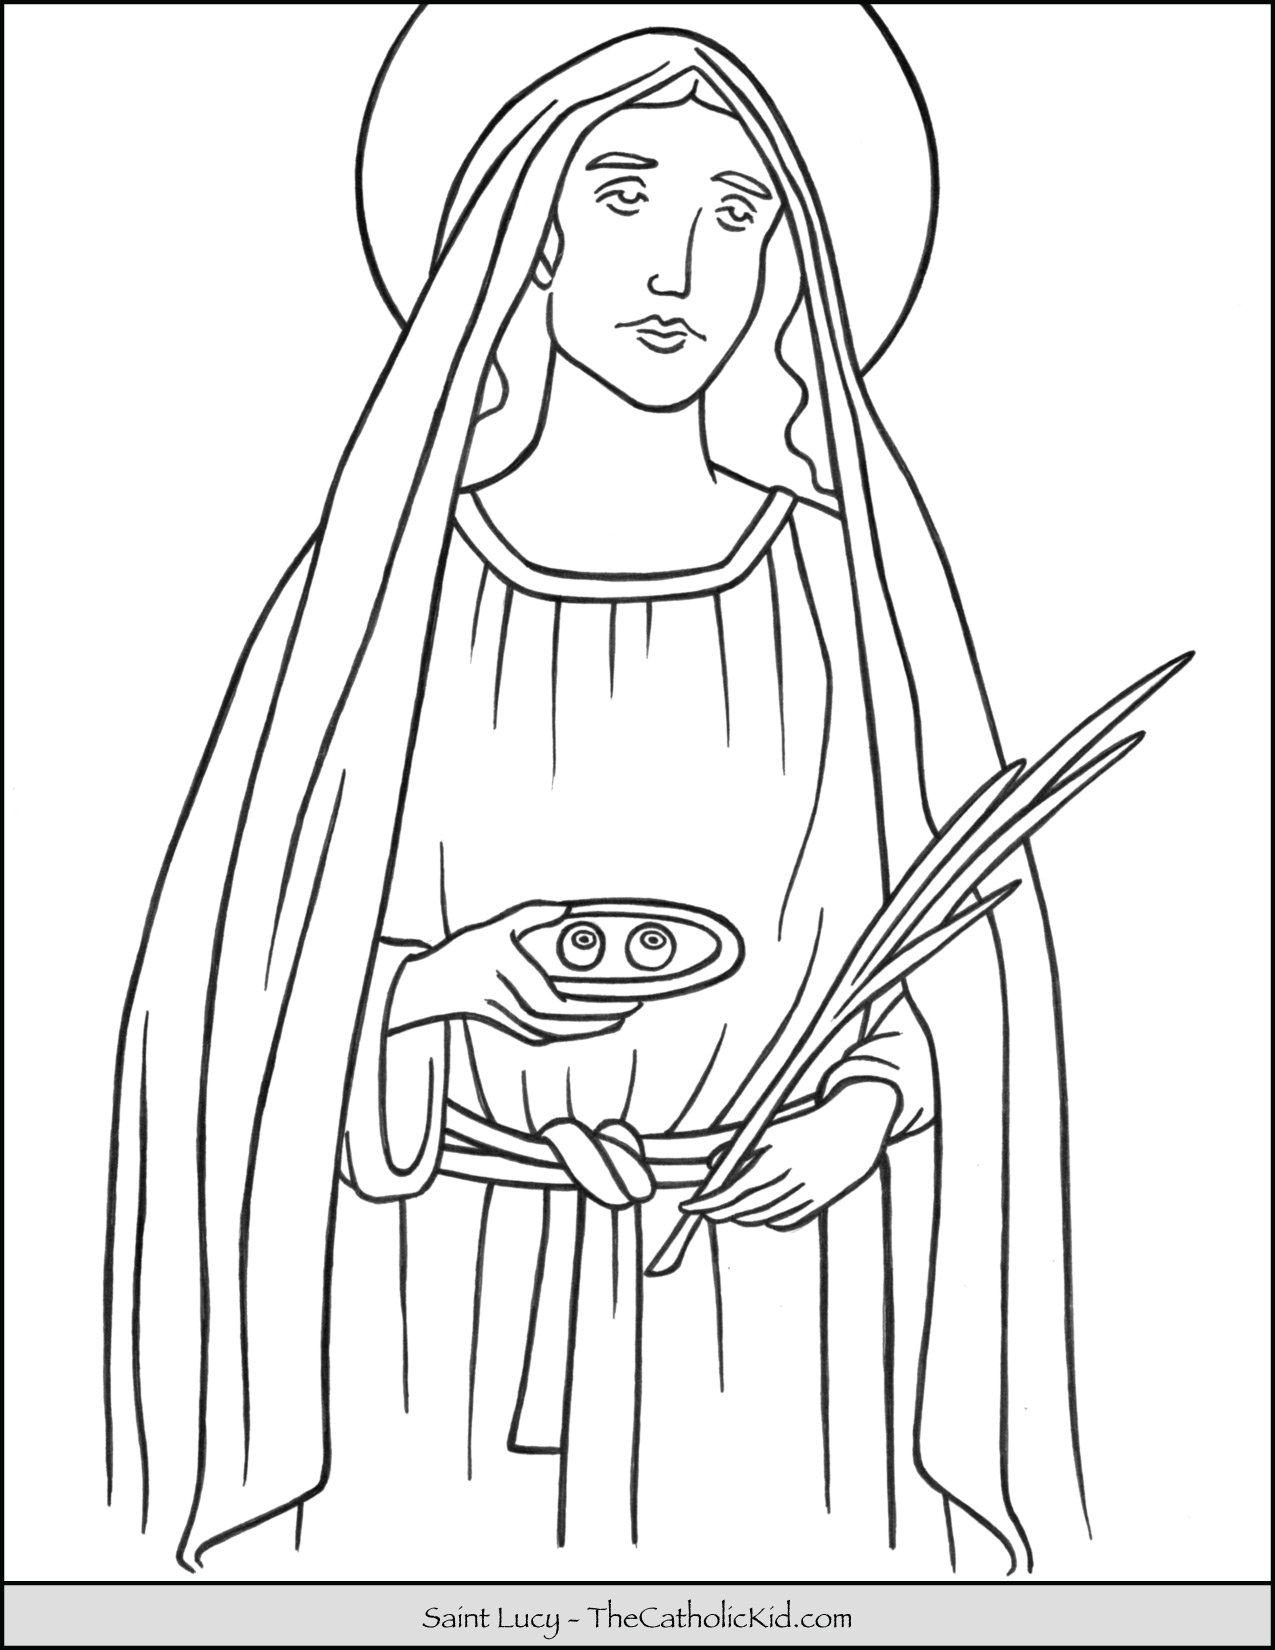 Saint Lucy Coloring Page